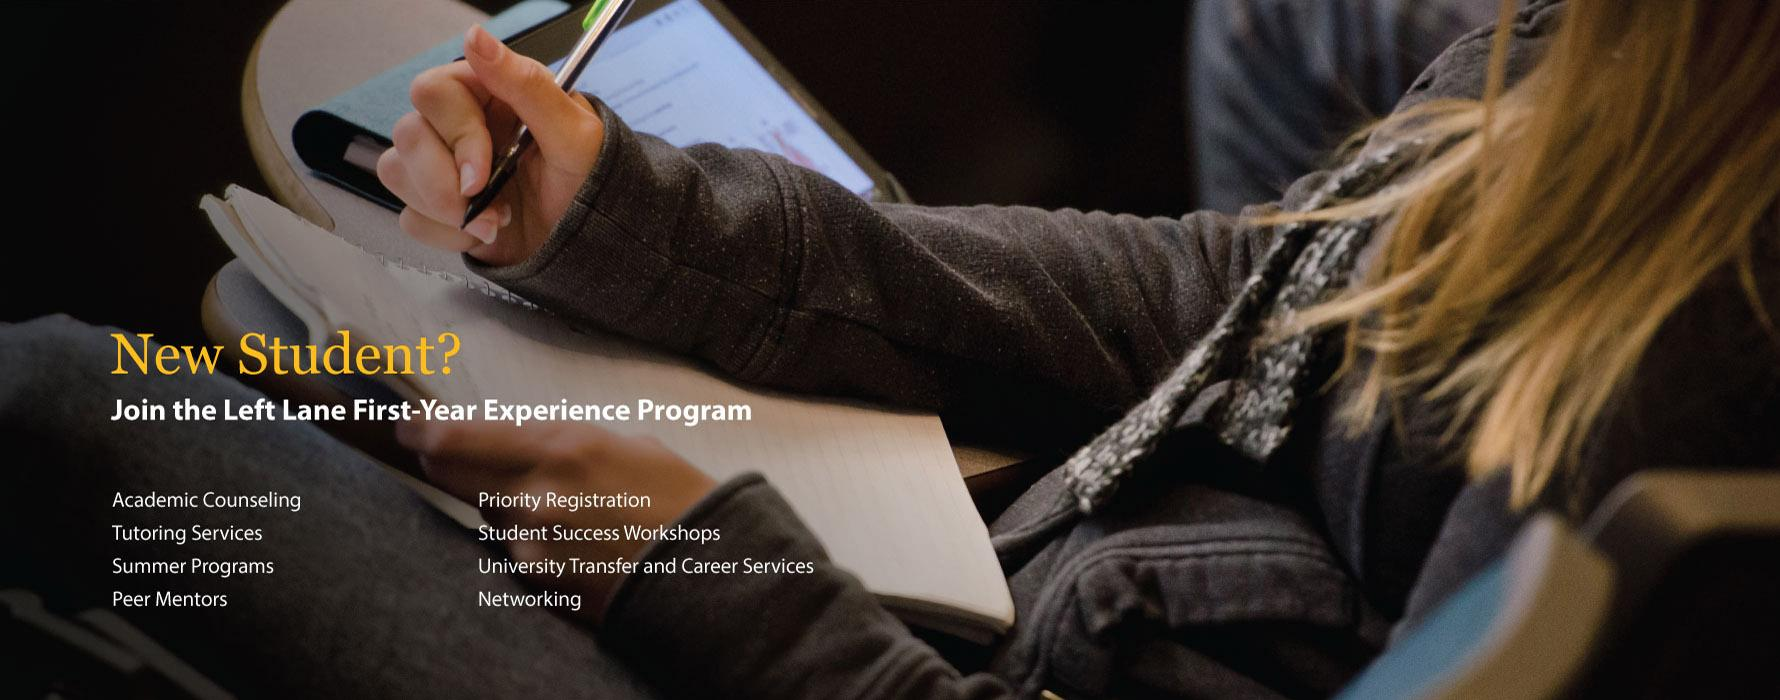 New Student? Join the Left Lane First-Year Experience Program: Academic Counseling, Tutoring Services, Summer Programs, Peer Mentors, Priority Registration, Student Success Workshops, University Transfer and Career Services, Networking